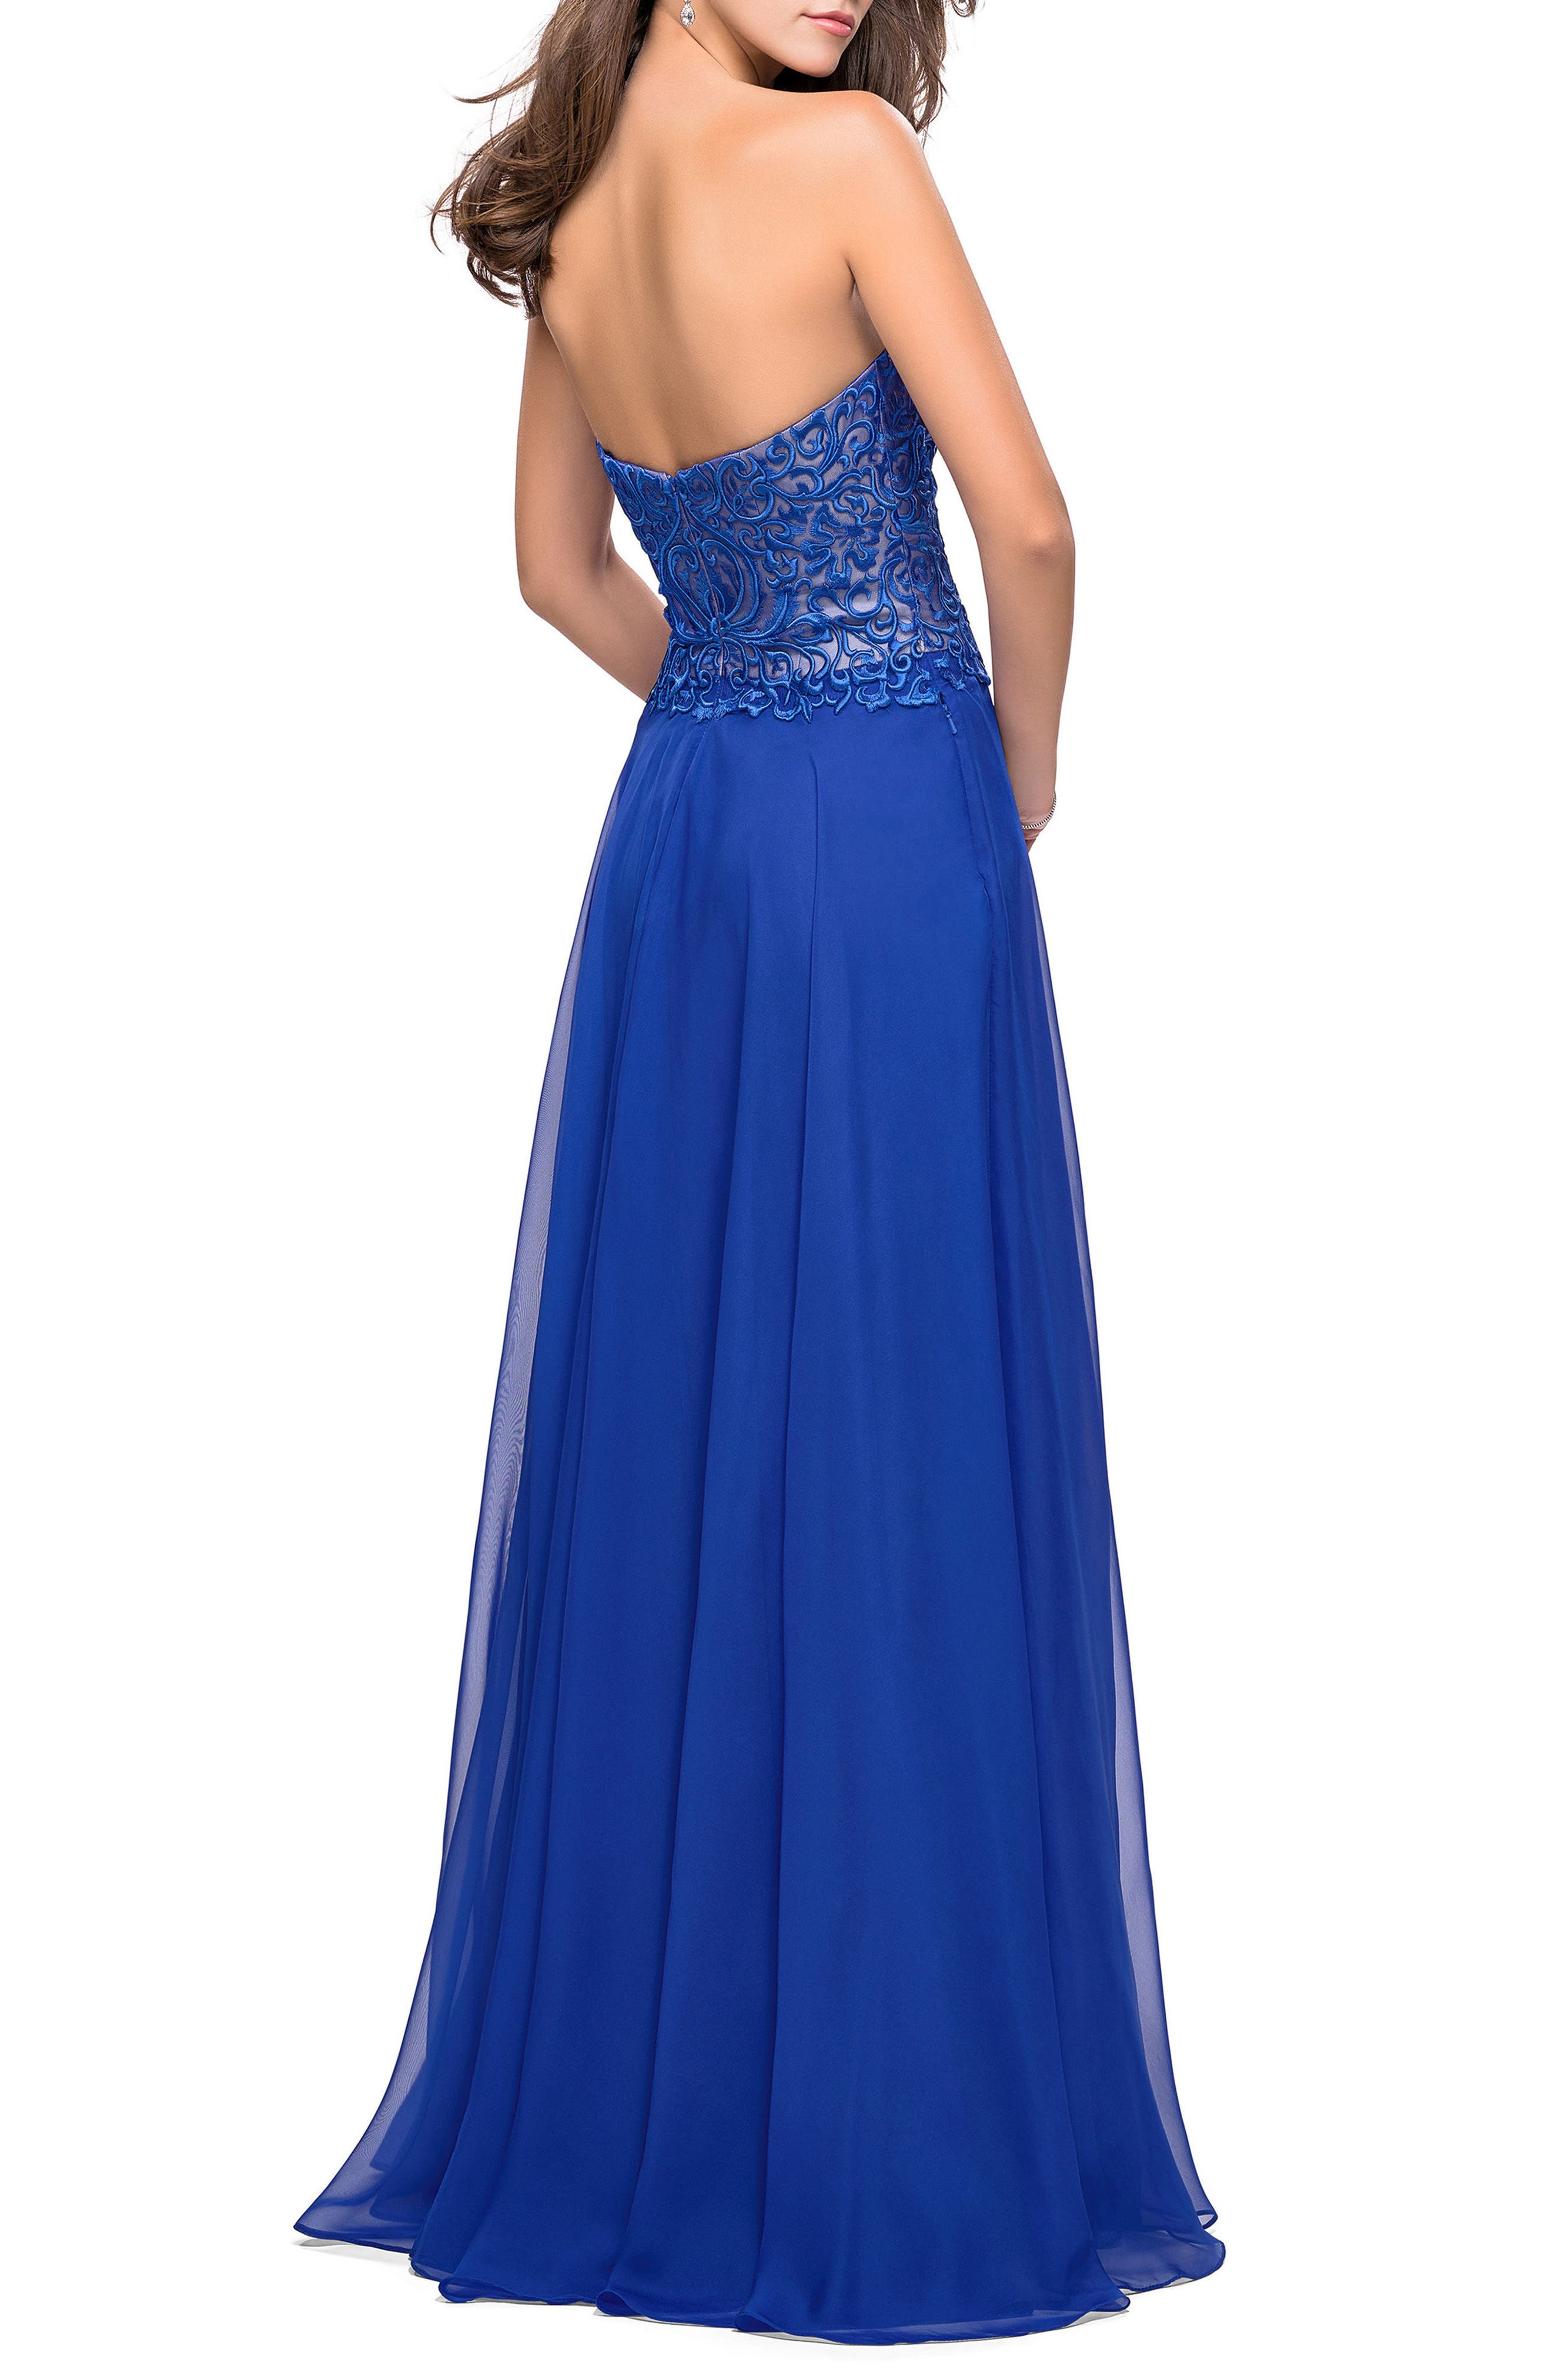 Strapless Chiffon Gown,                             Alternate thumbnail 2, color,                             402